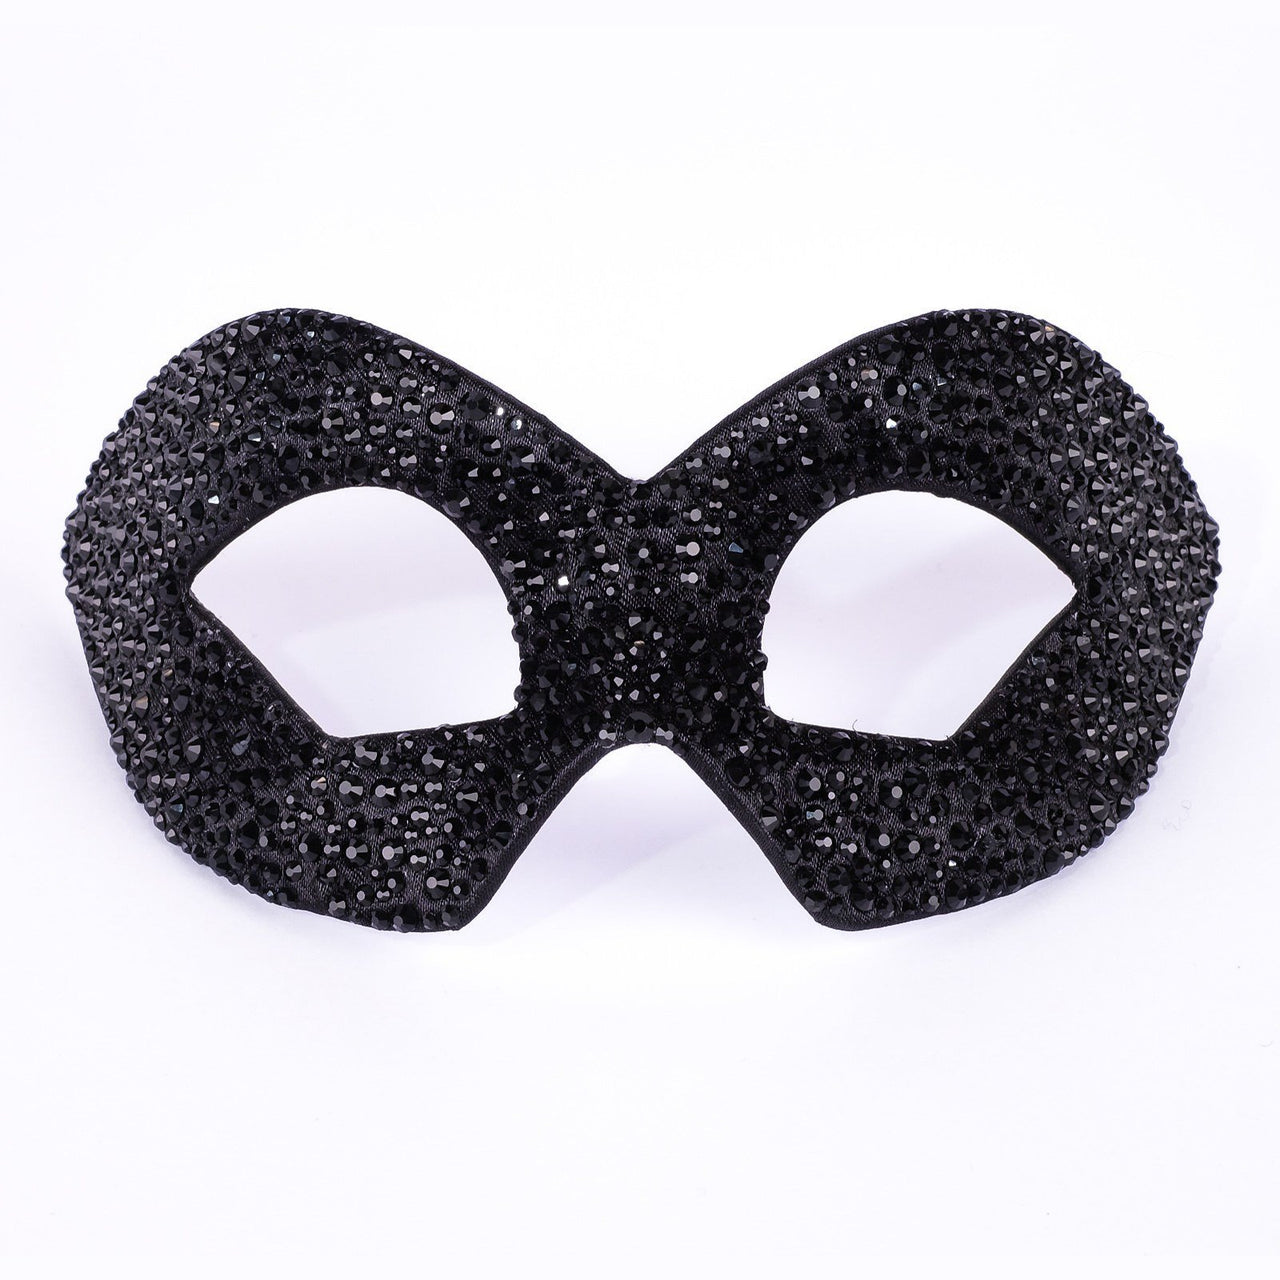 Hero Strass Black Masquerade Mask